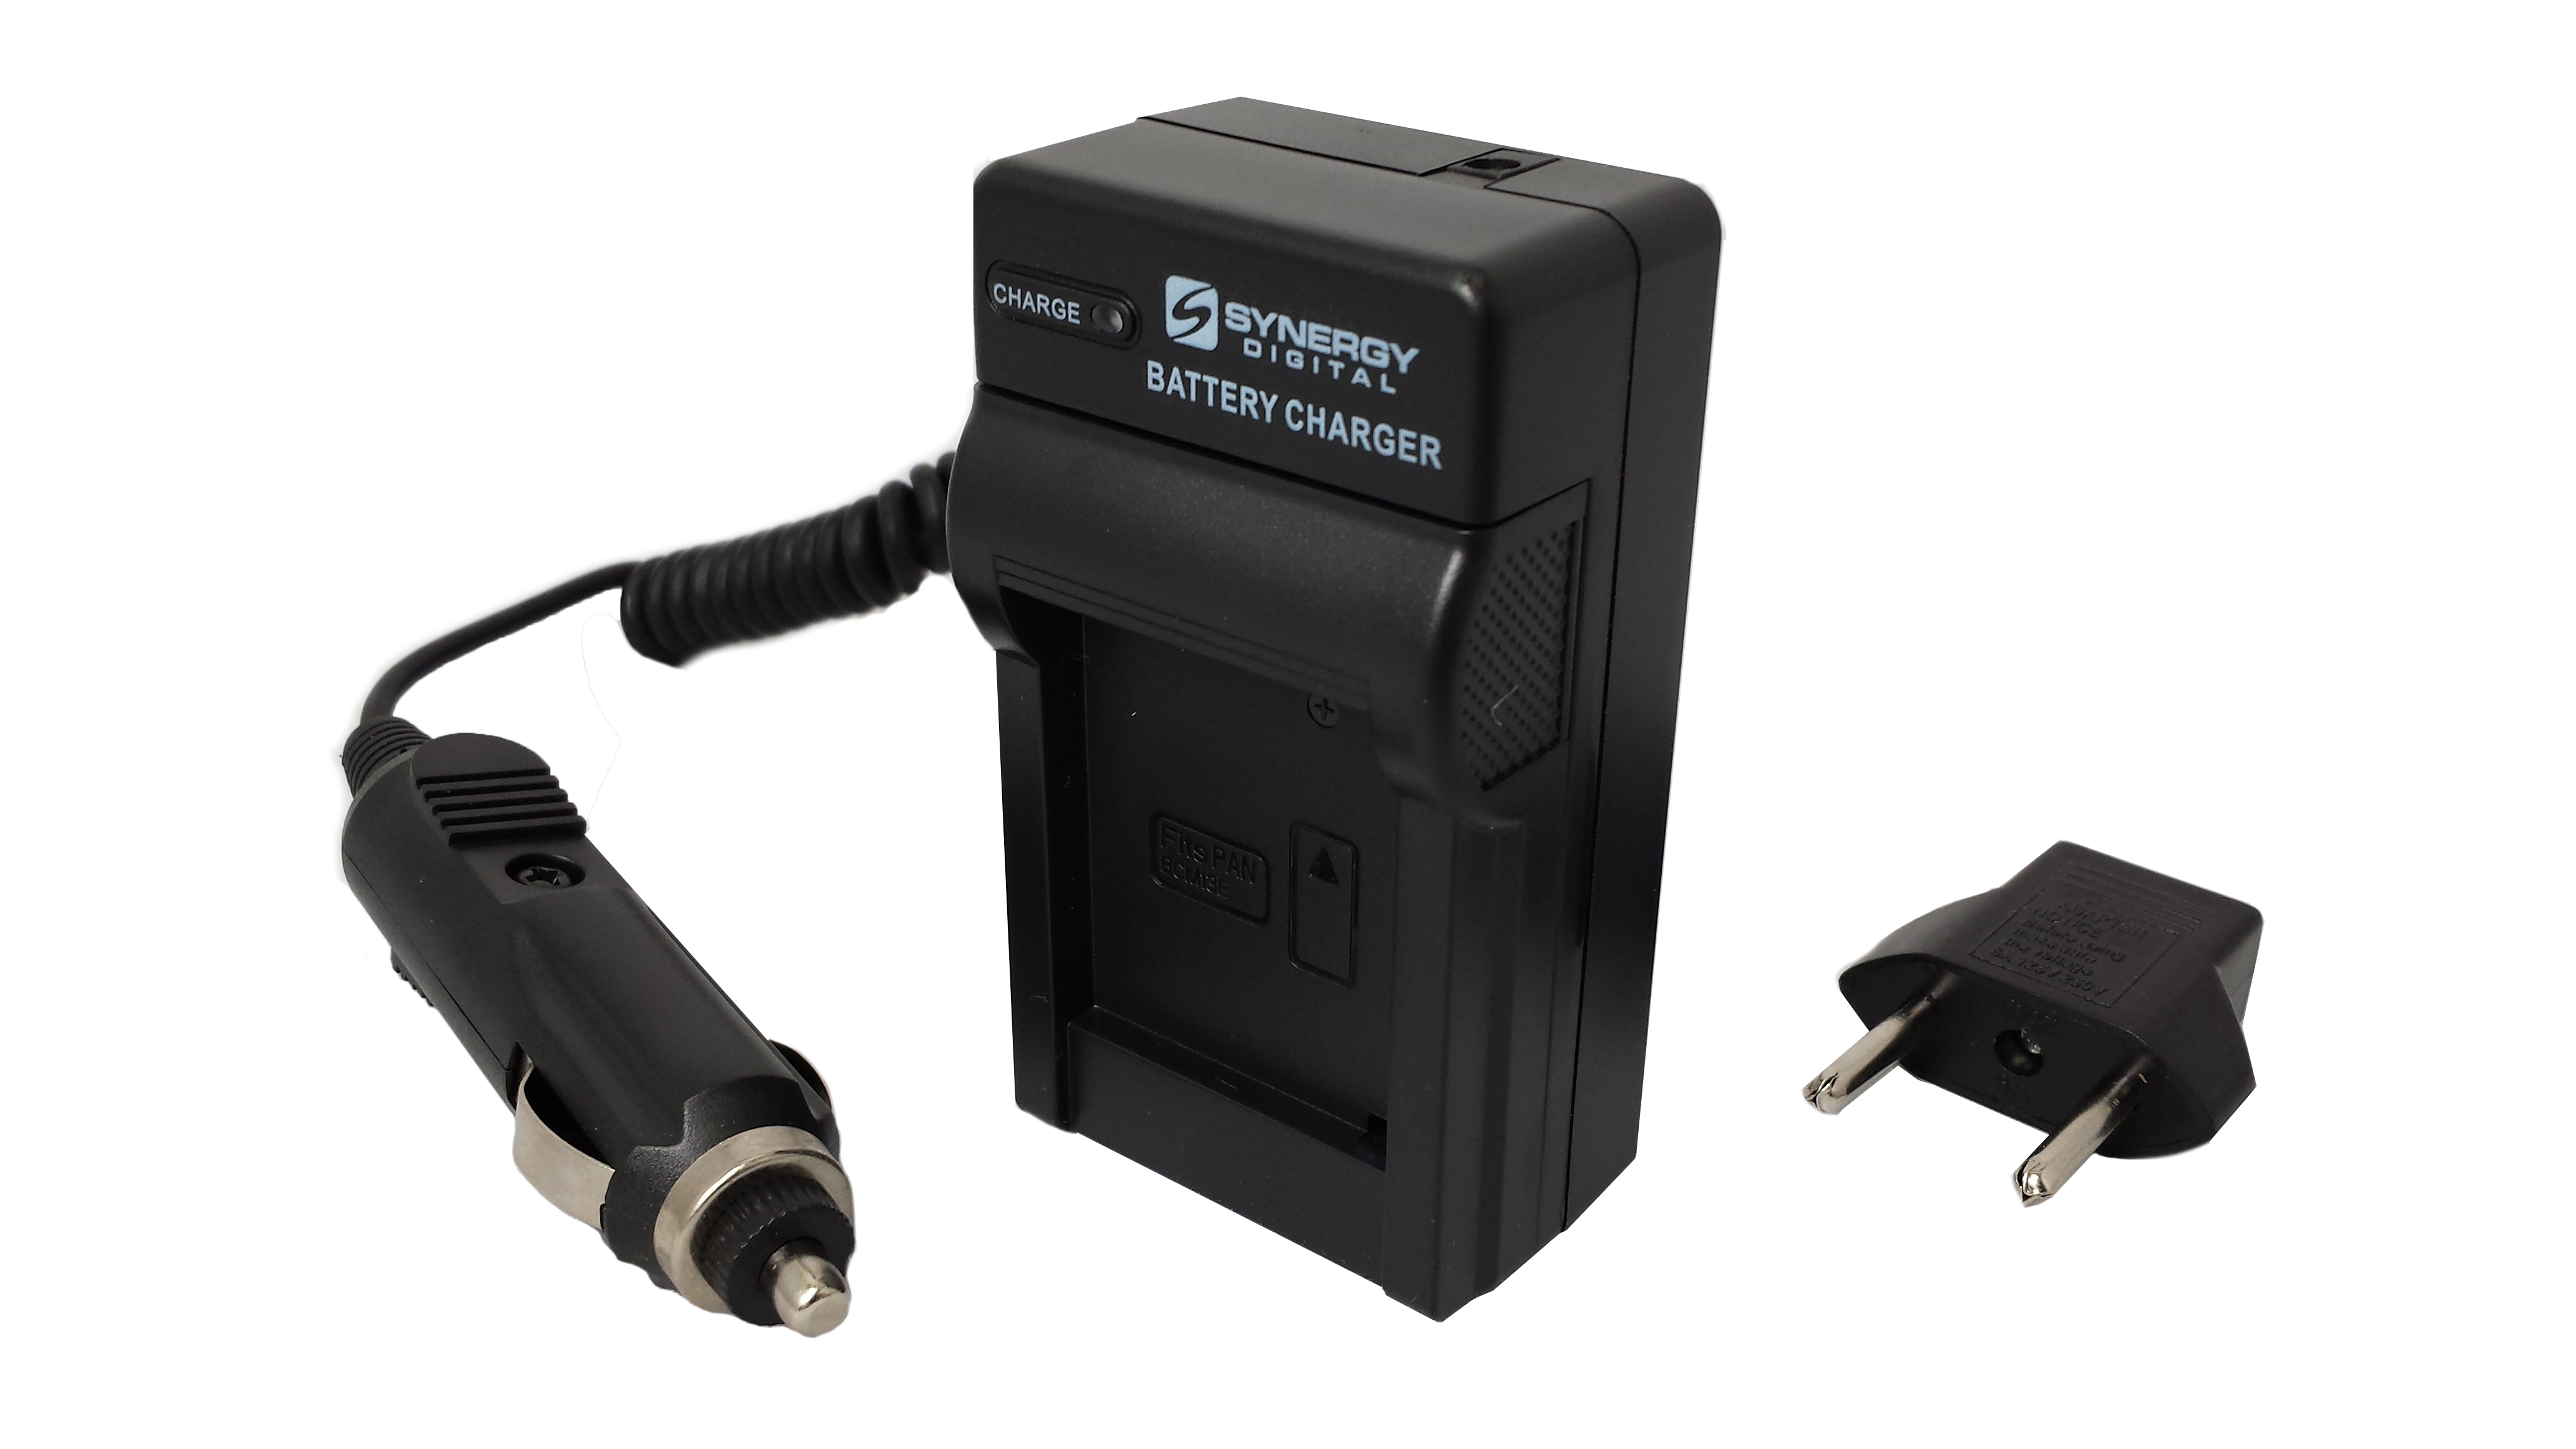 - Battery Charger for Panasonic CGR-D08 CGR-D28 110//220v with Car /& EU adapters Panasonic NV-MX5 Camcorder Battery Charger CGR-D16 /& CGR-D54 Batteries